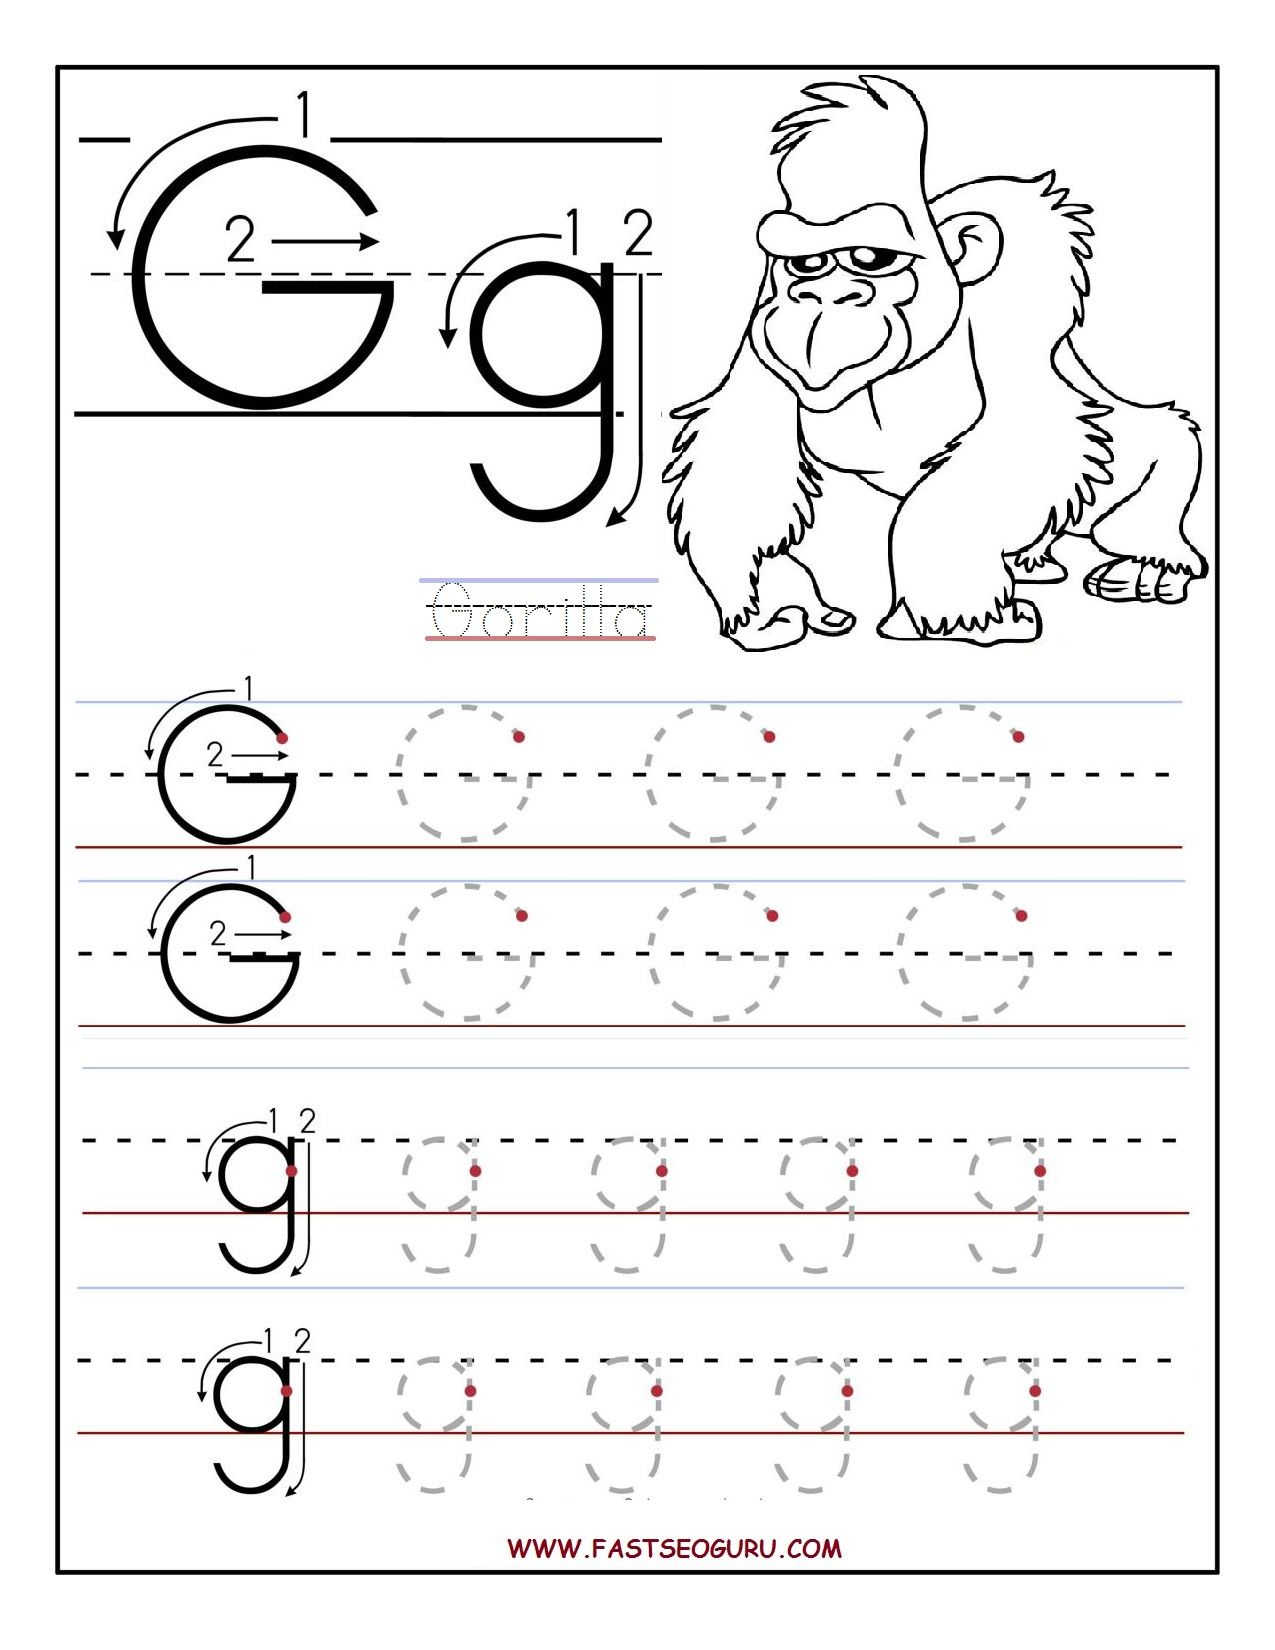 Letter G Tracing Worksheets Preschool